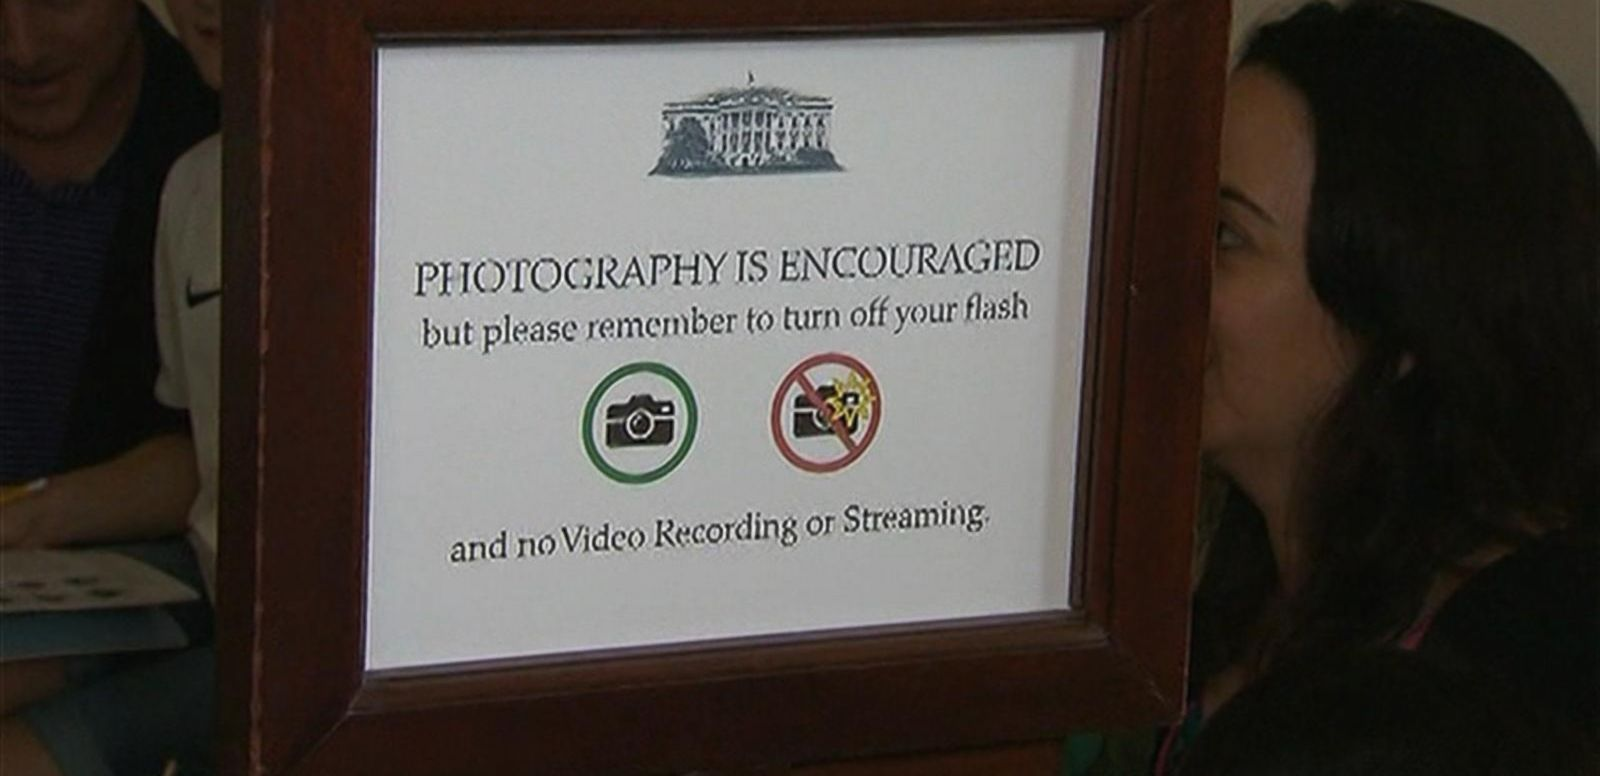 VIDEO: White House Photo Ban Lifted